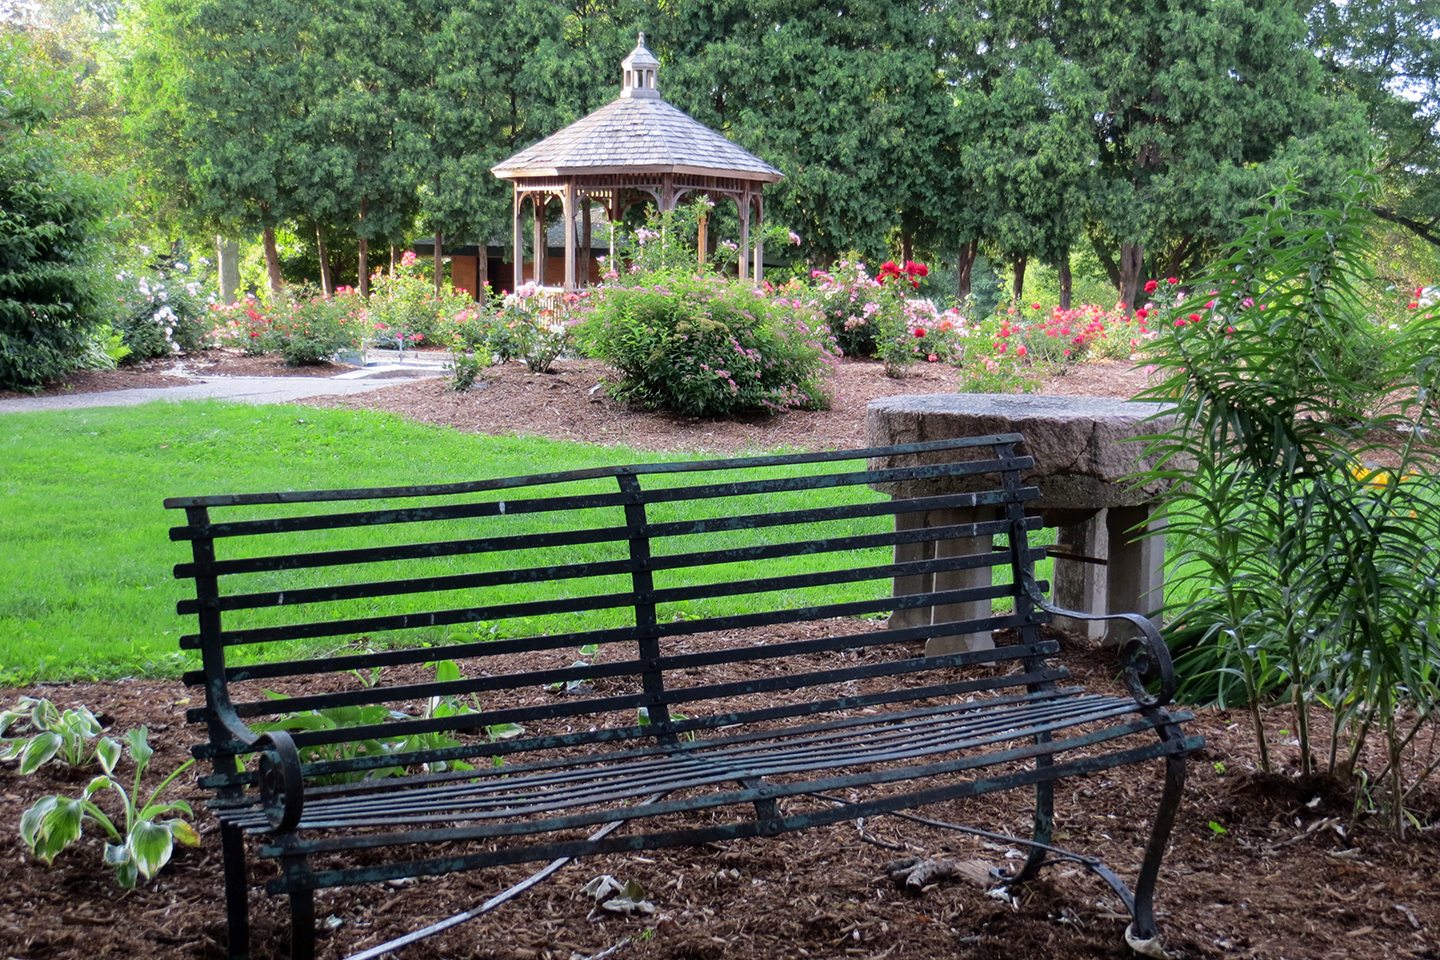 weed park bench and gazebo with trees and grass